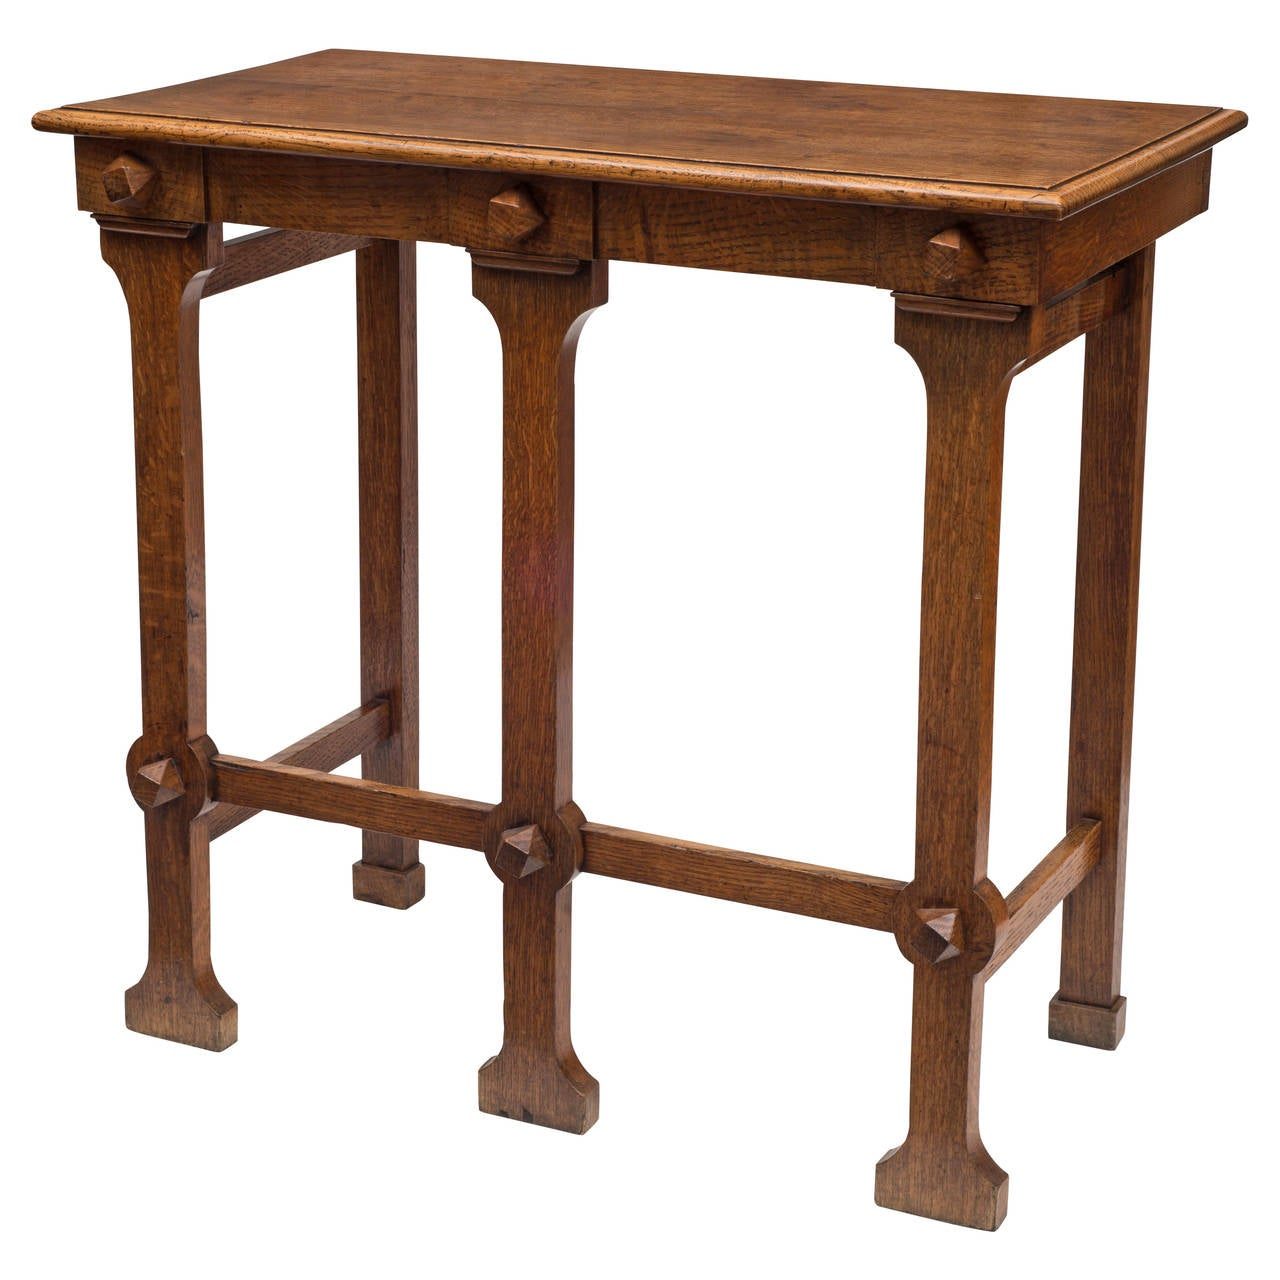 unusual arts and crafts table at 1stdibs. Black Bedroom Furniture Sets. Home Design Ideas